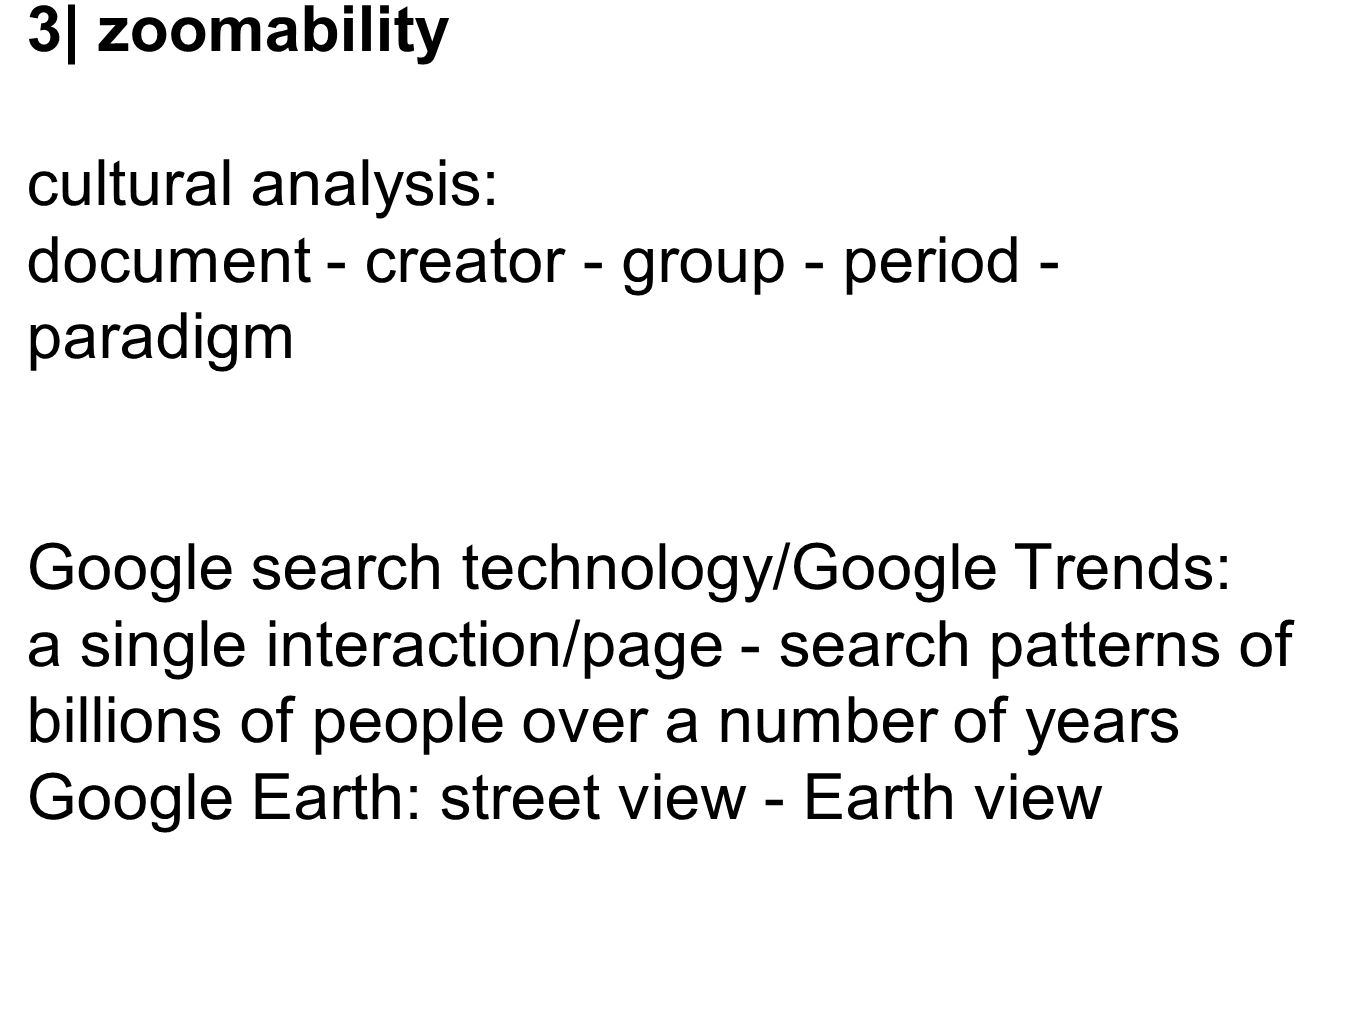 3| zoomability cultural analysis: document - creator - group - period - paradigm Google search technology/Google Trends: a single interaction/page - s